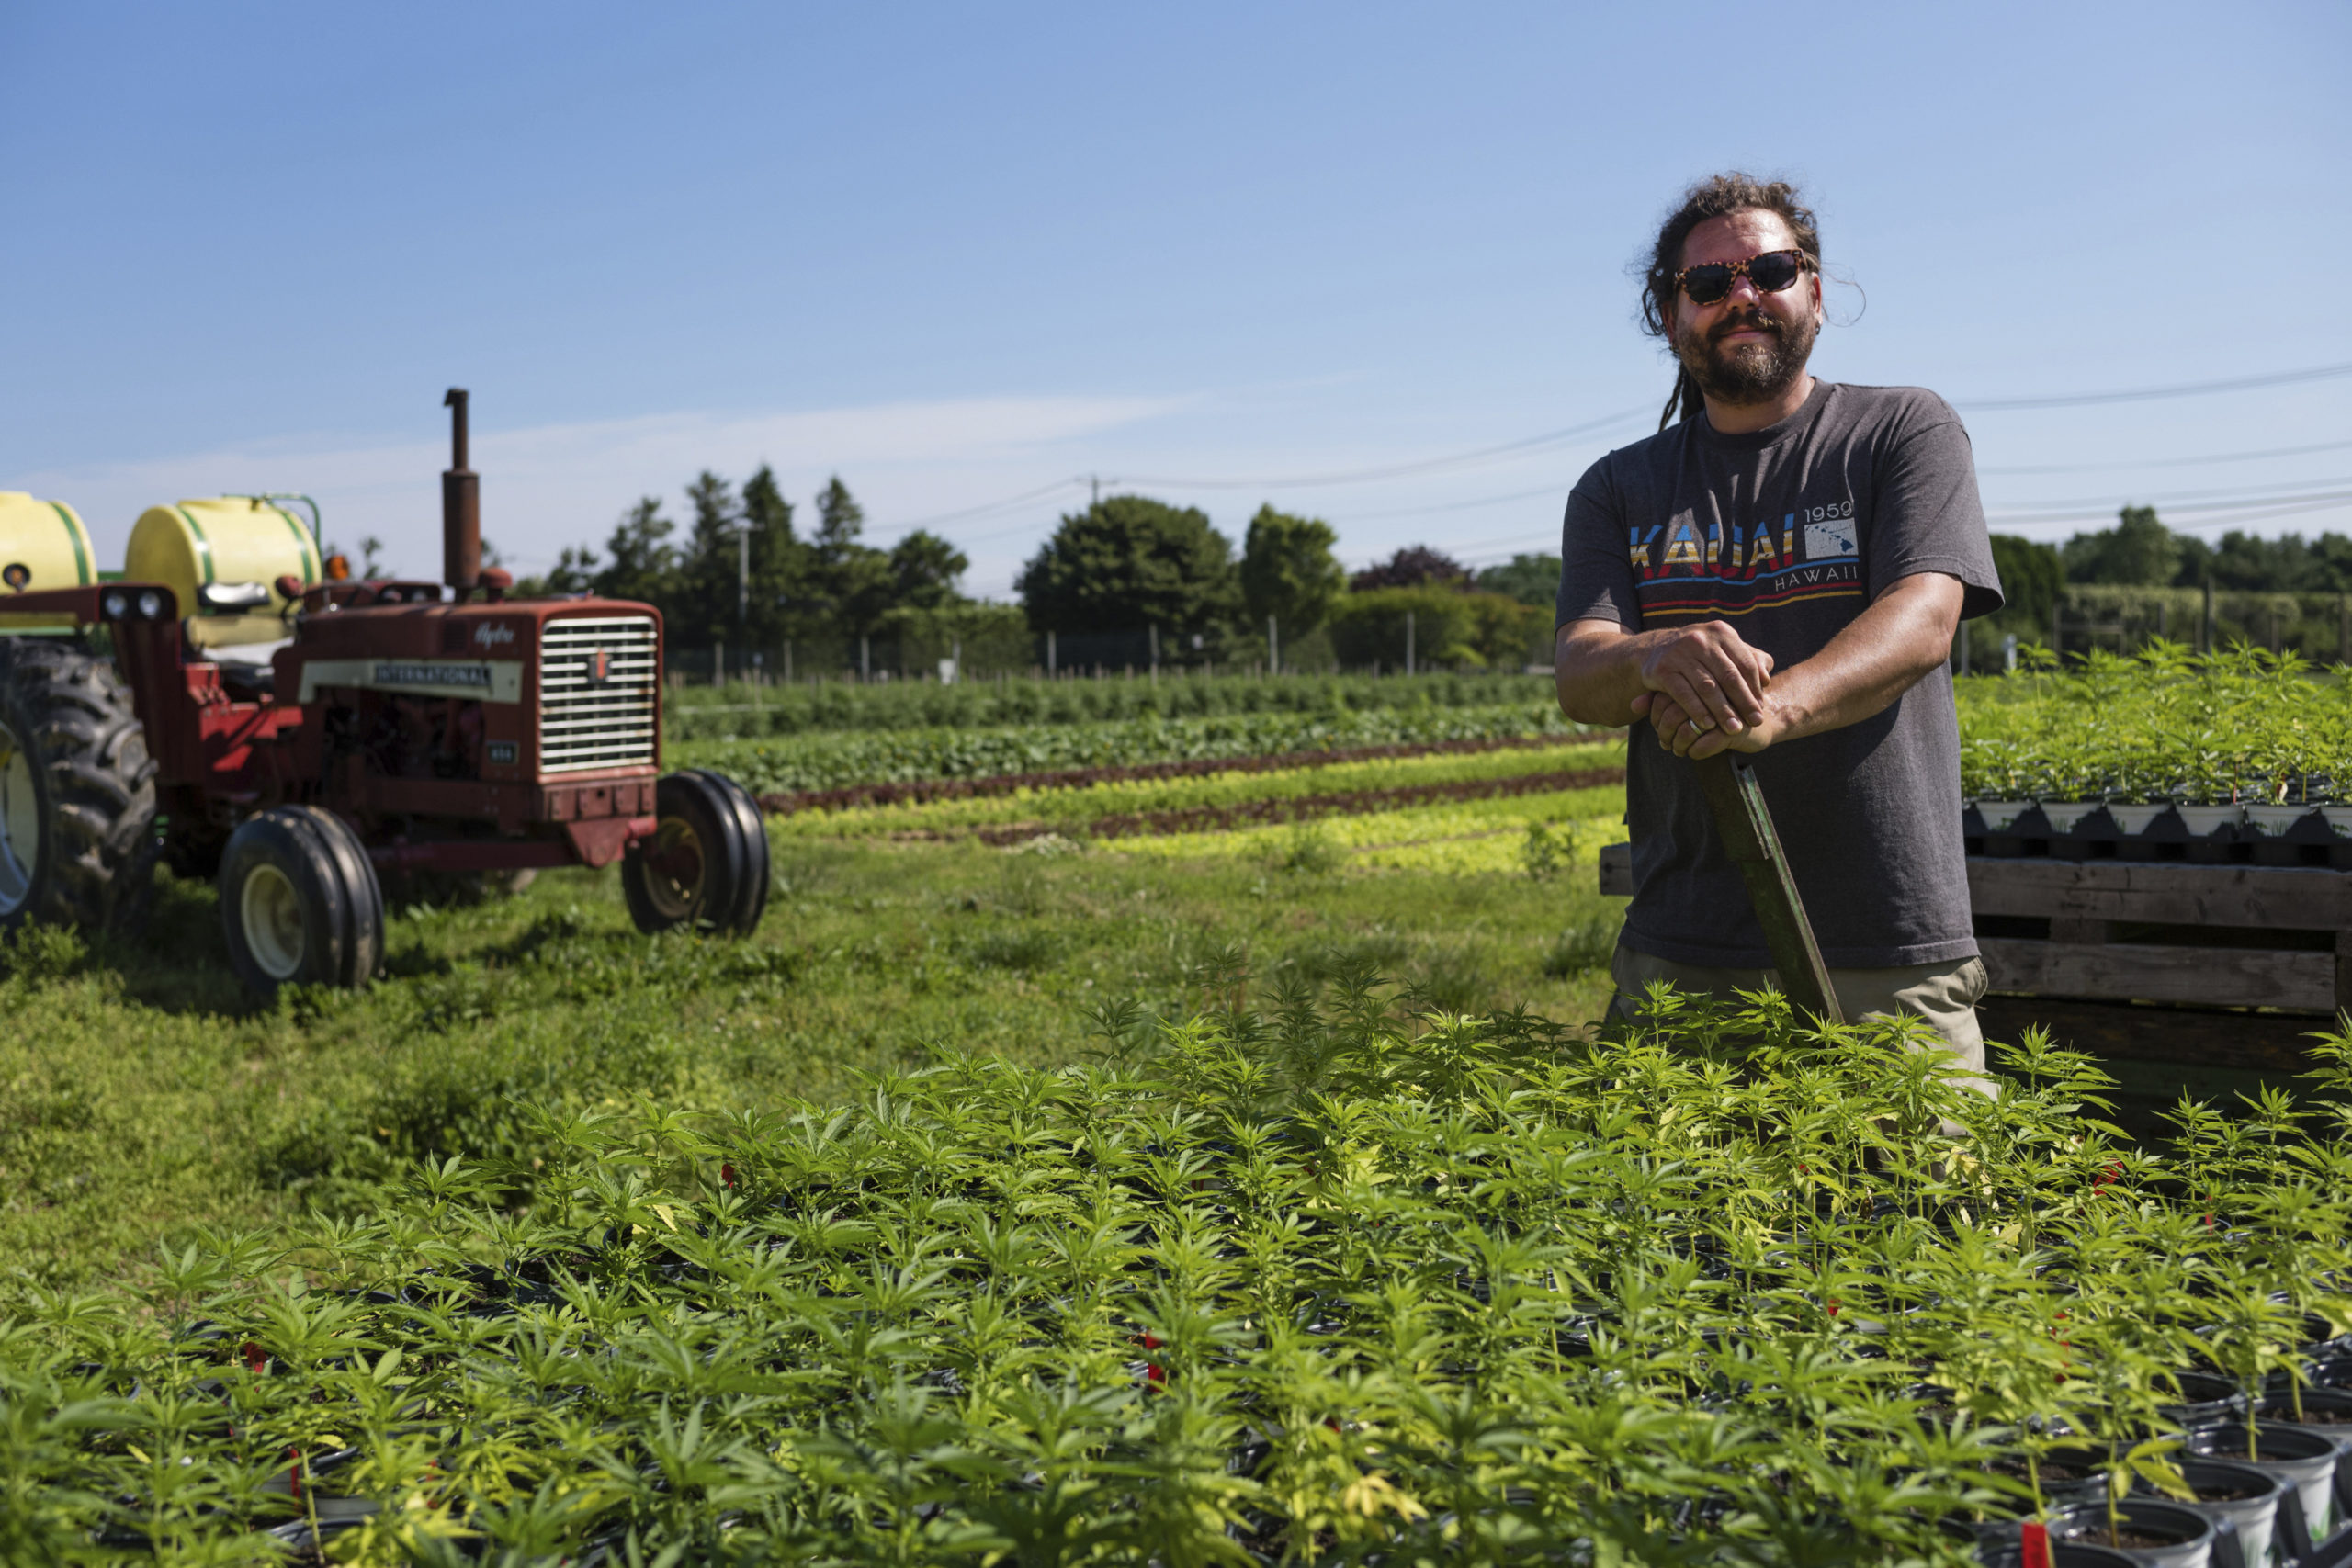 Cannabis sativa grows at David Falkowski's Bridgehampton farm at an undisclosed location in 2019 in Bridgehampton. David Falkowski's Bridgehampton farm, Open Minded Organics (OMO), has a New York State license to grow industrial hemp at an   undisclosed location and process and sell CBD oil as a therapeutic dietary supplement.  LORI HAWKINS